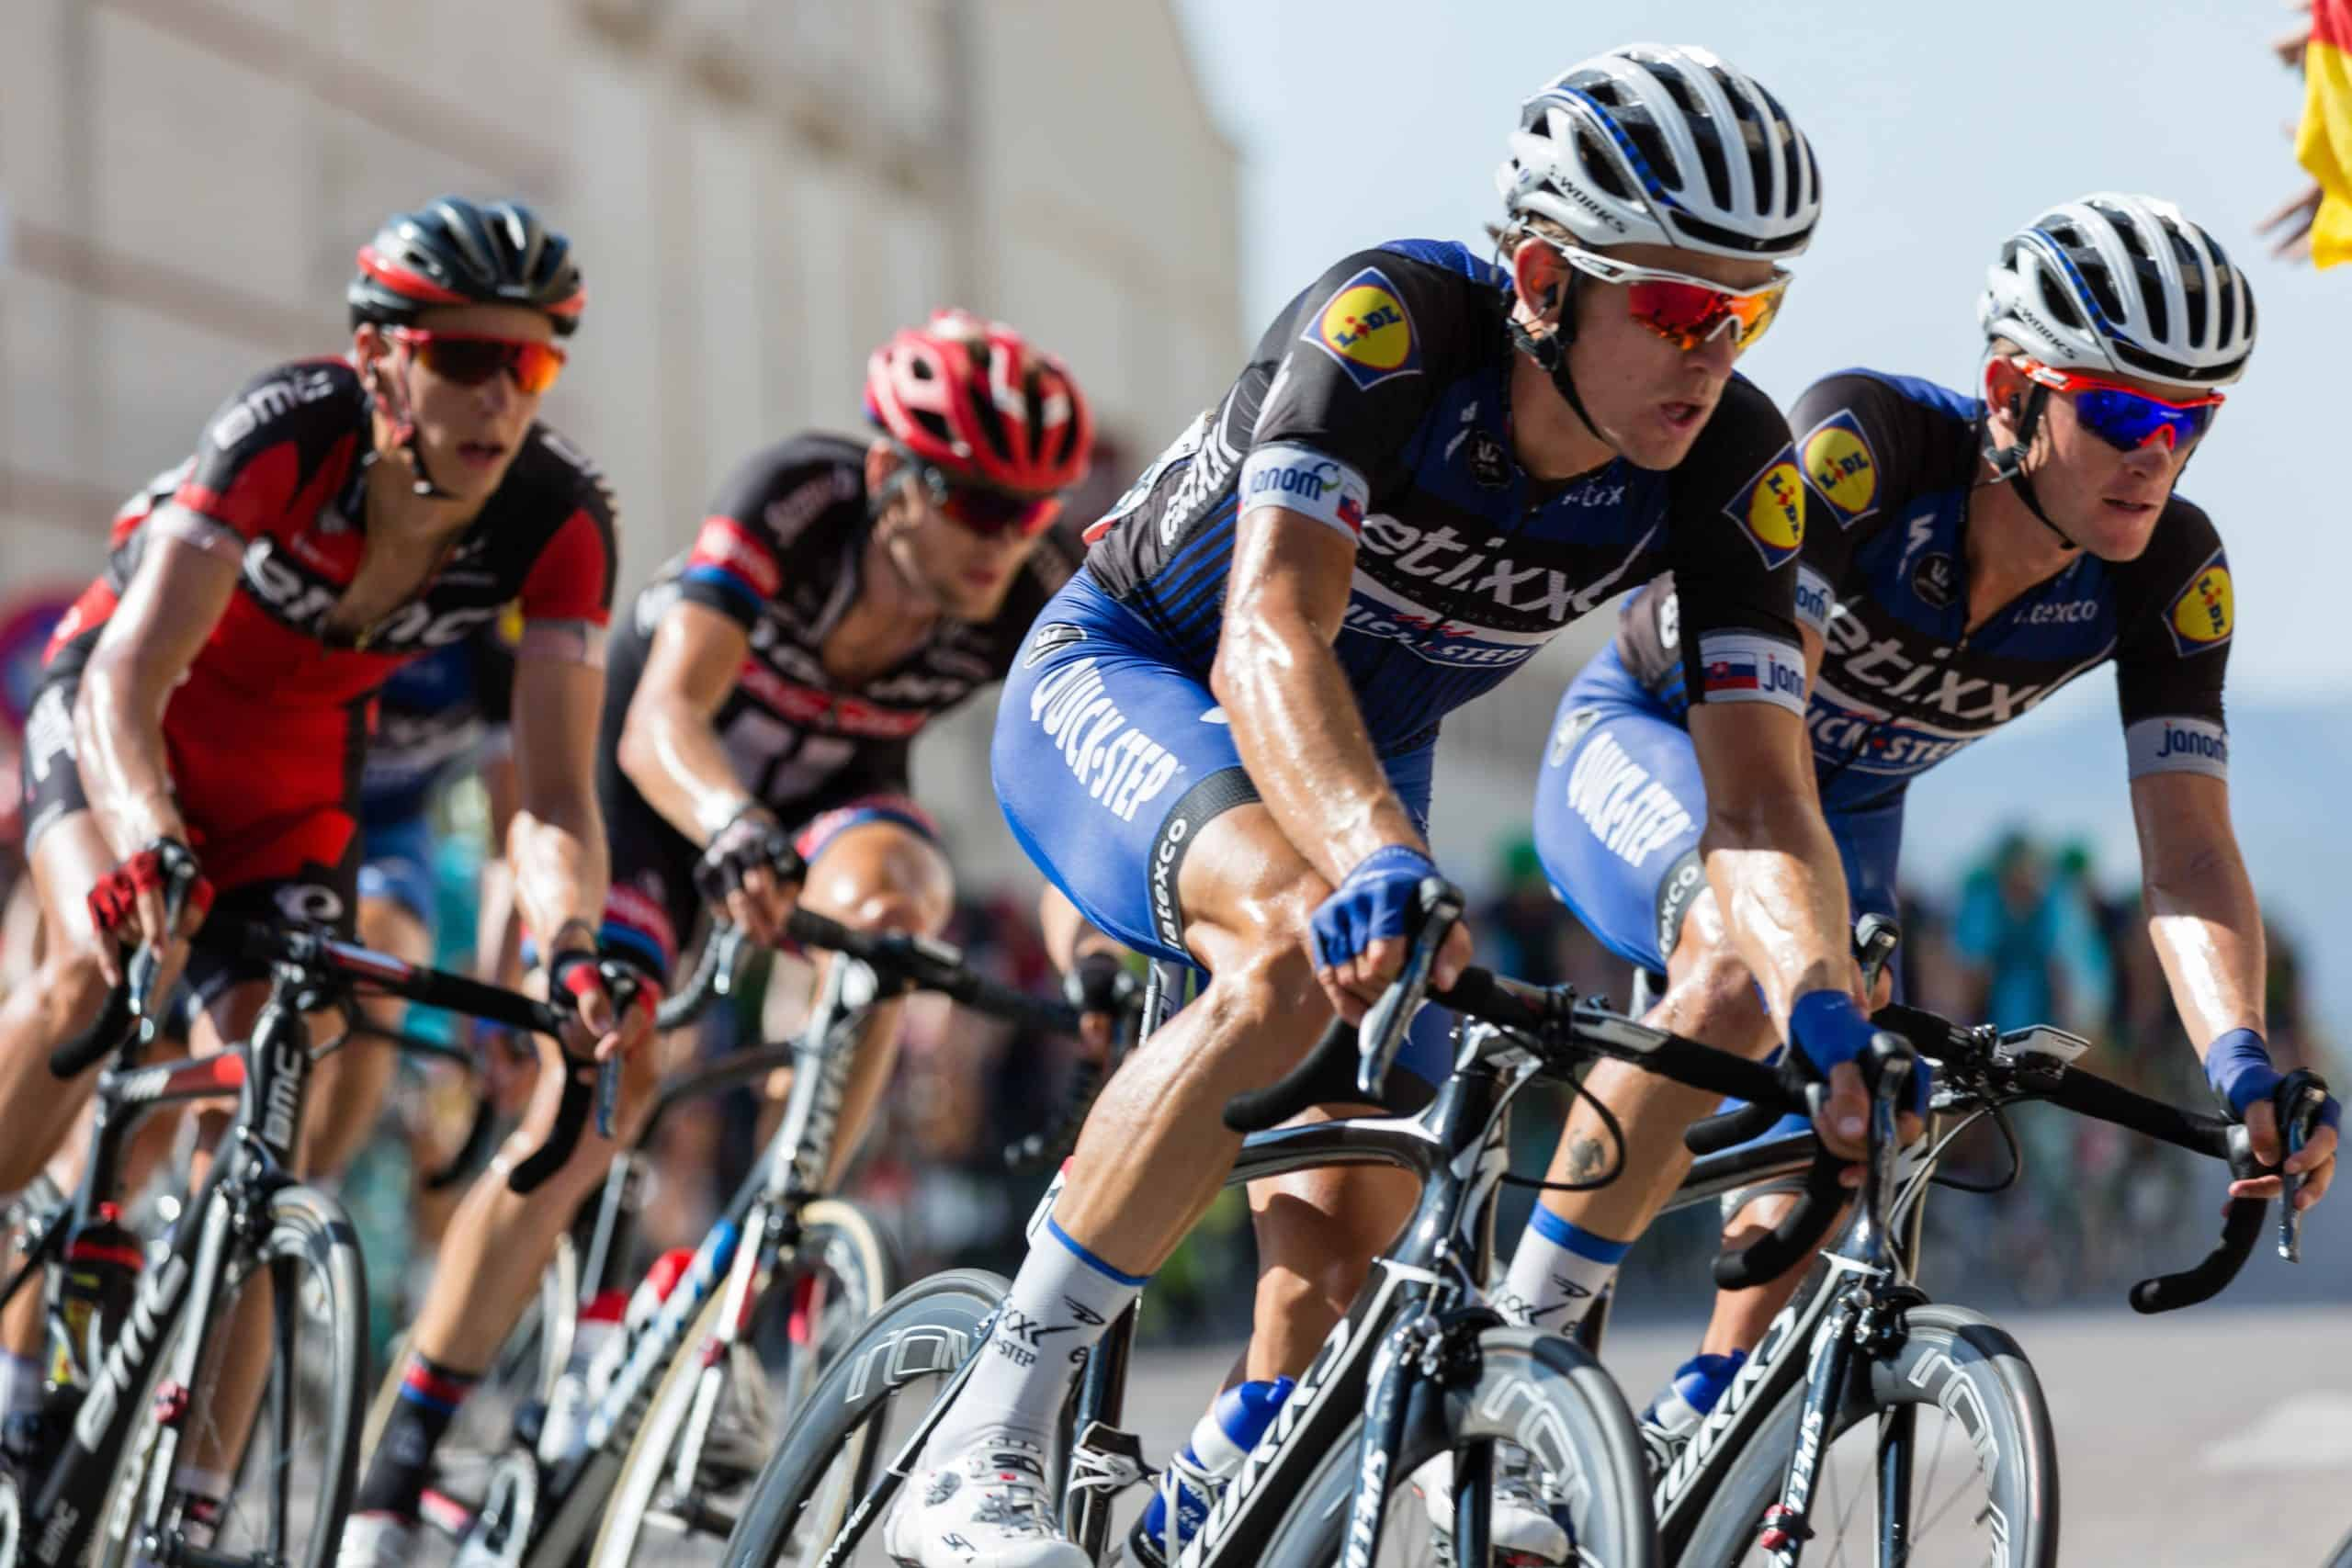 Road Bikes To Buy For Your Bike Race